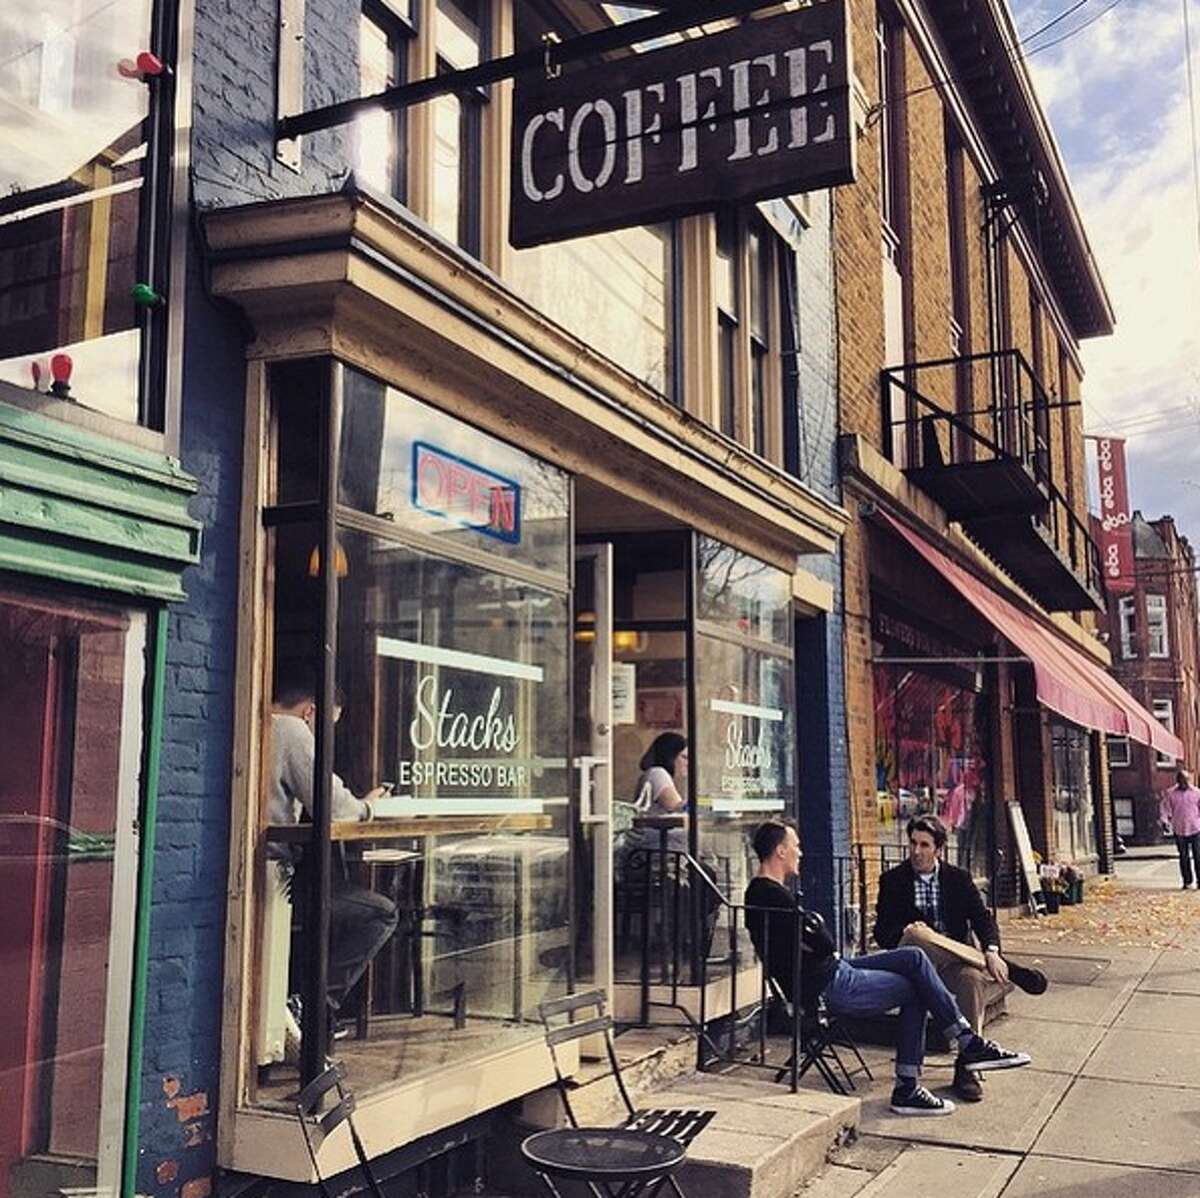 Stacks Espresso Bar. Where: 260 Lark St., Albany. Visit the website. Read the Yelp reviews.